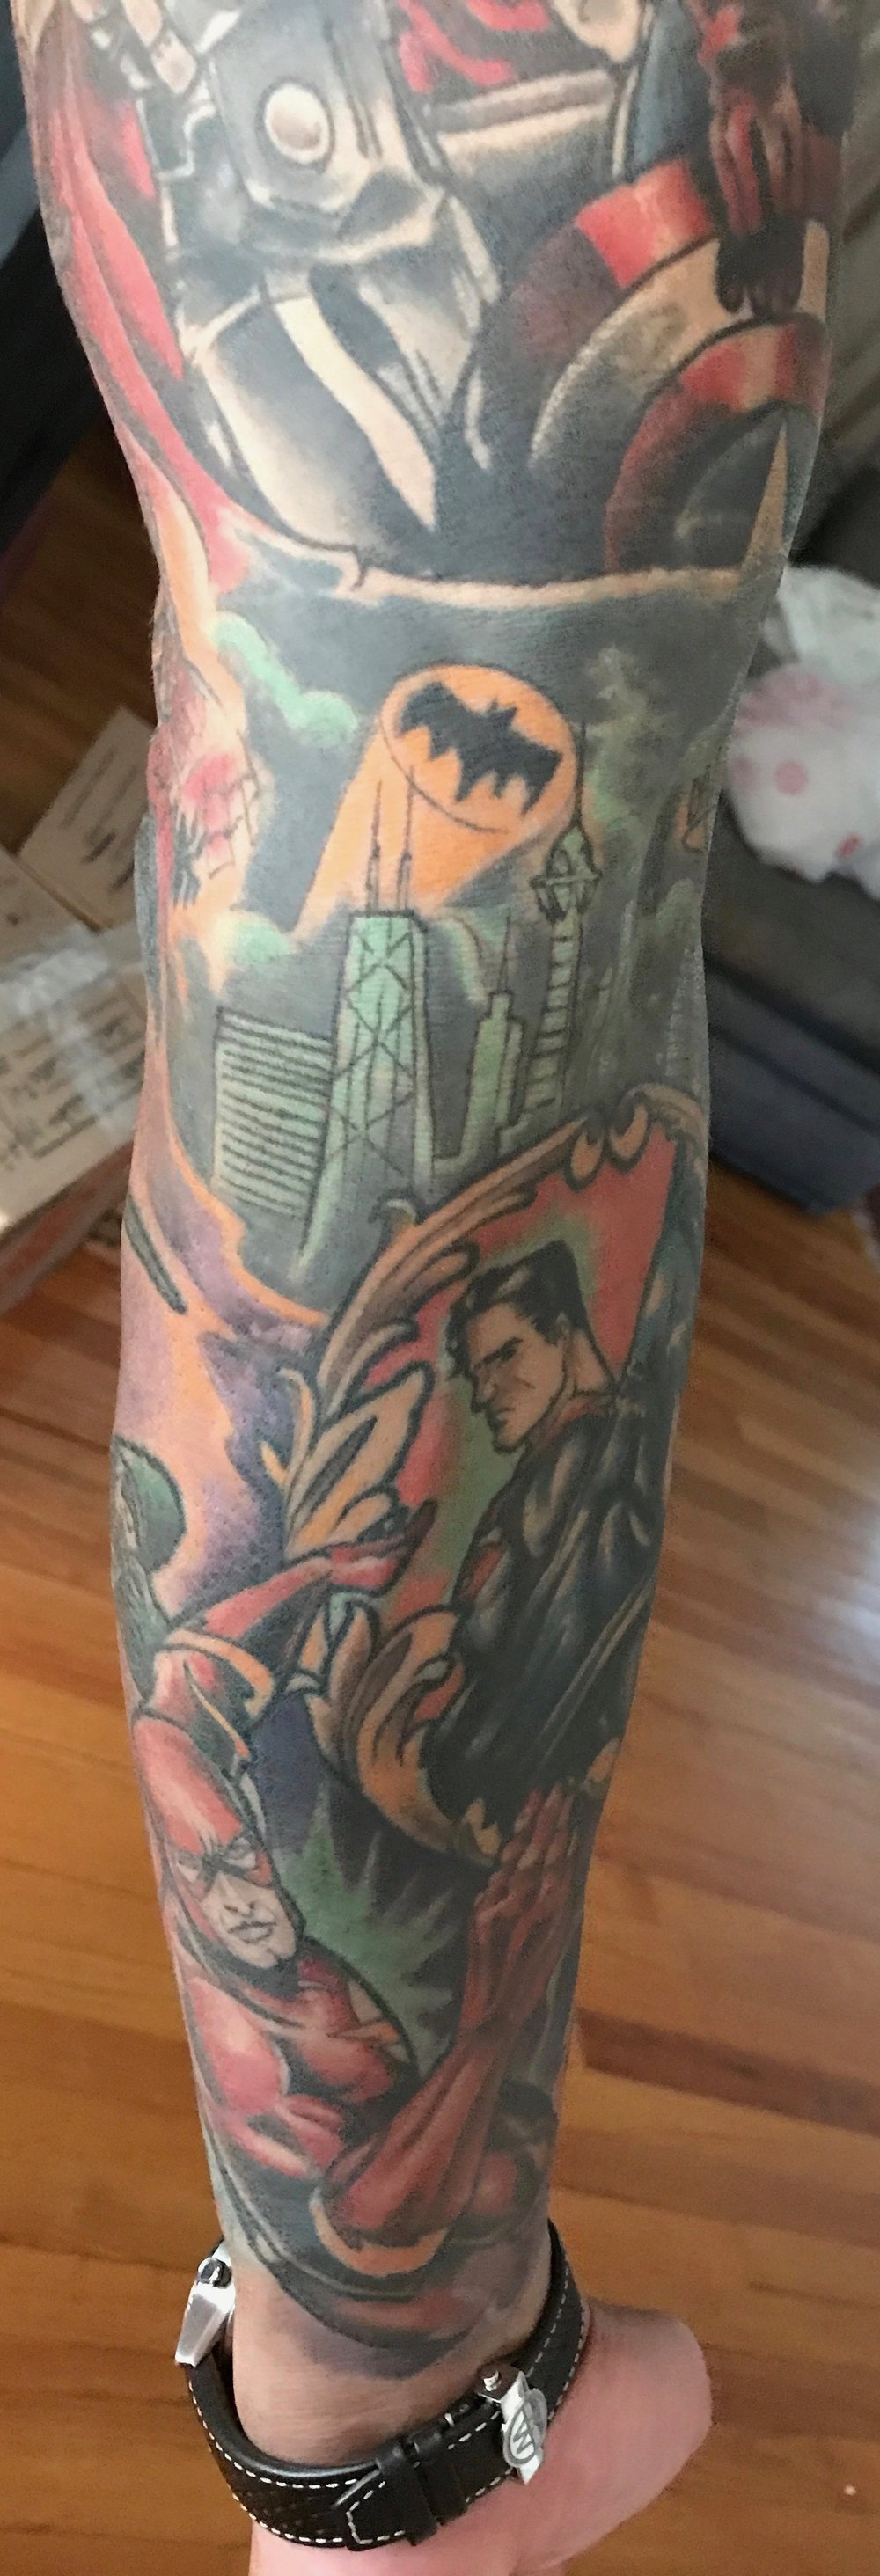 The upper part of the sleeve is an amazing cover up by Quori who transformed a botched tatoo into an amazing Avengers tattoo. A couple of years later I decided that it would be cool if I did the lower part of it entirely in DC heroes.